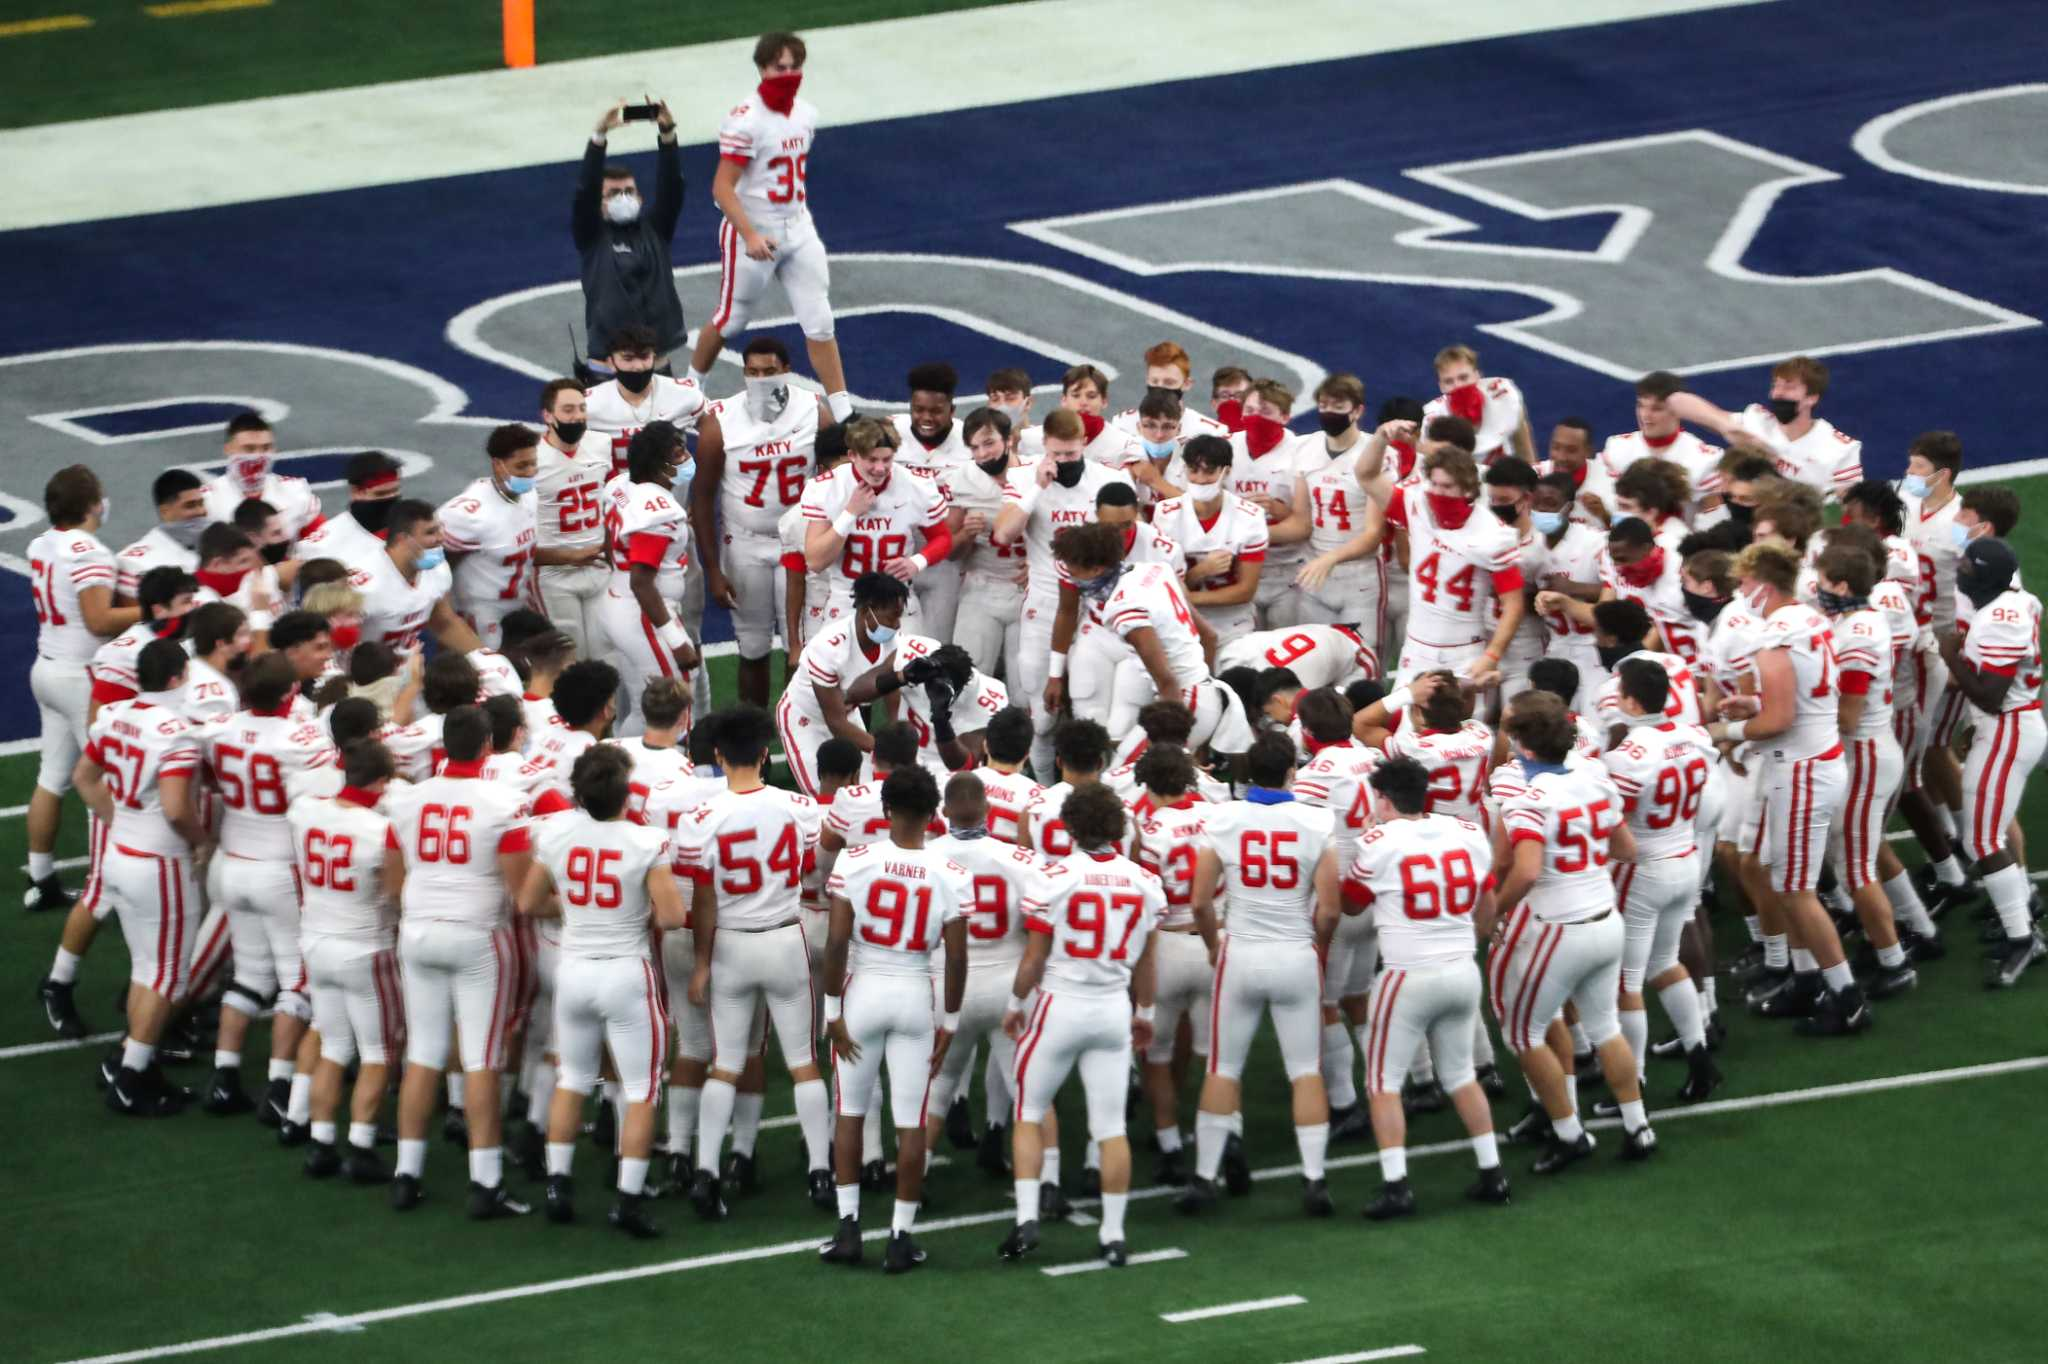 Katy dominates Cedar Hill to win ninth state title